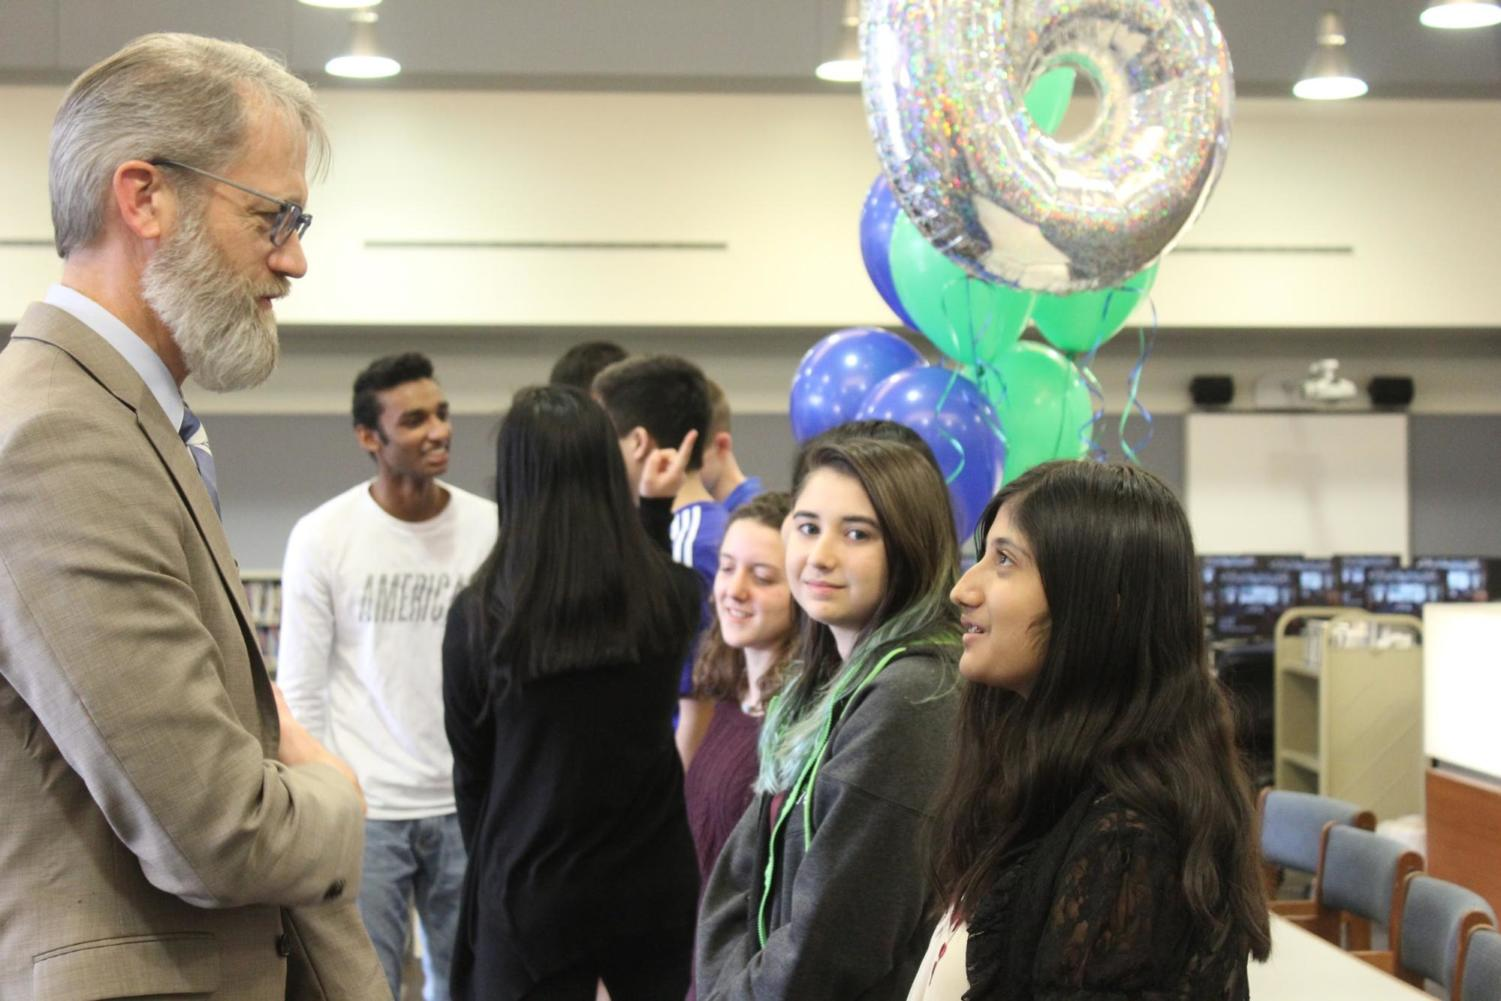 Sriya Kosaraju, sophomore, talks with Superintendent Dr. Eric Knost as he congratulates her on her perfect ACT score. Kosaraju was one of nine students who received a perfect score of 36 on her ACT.